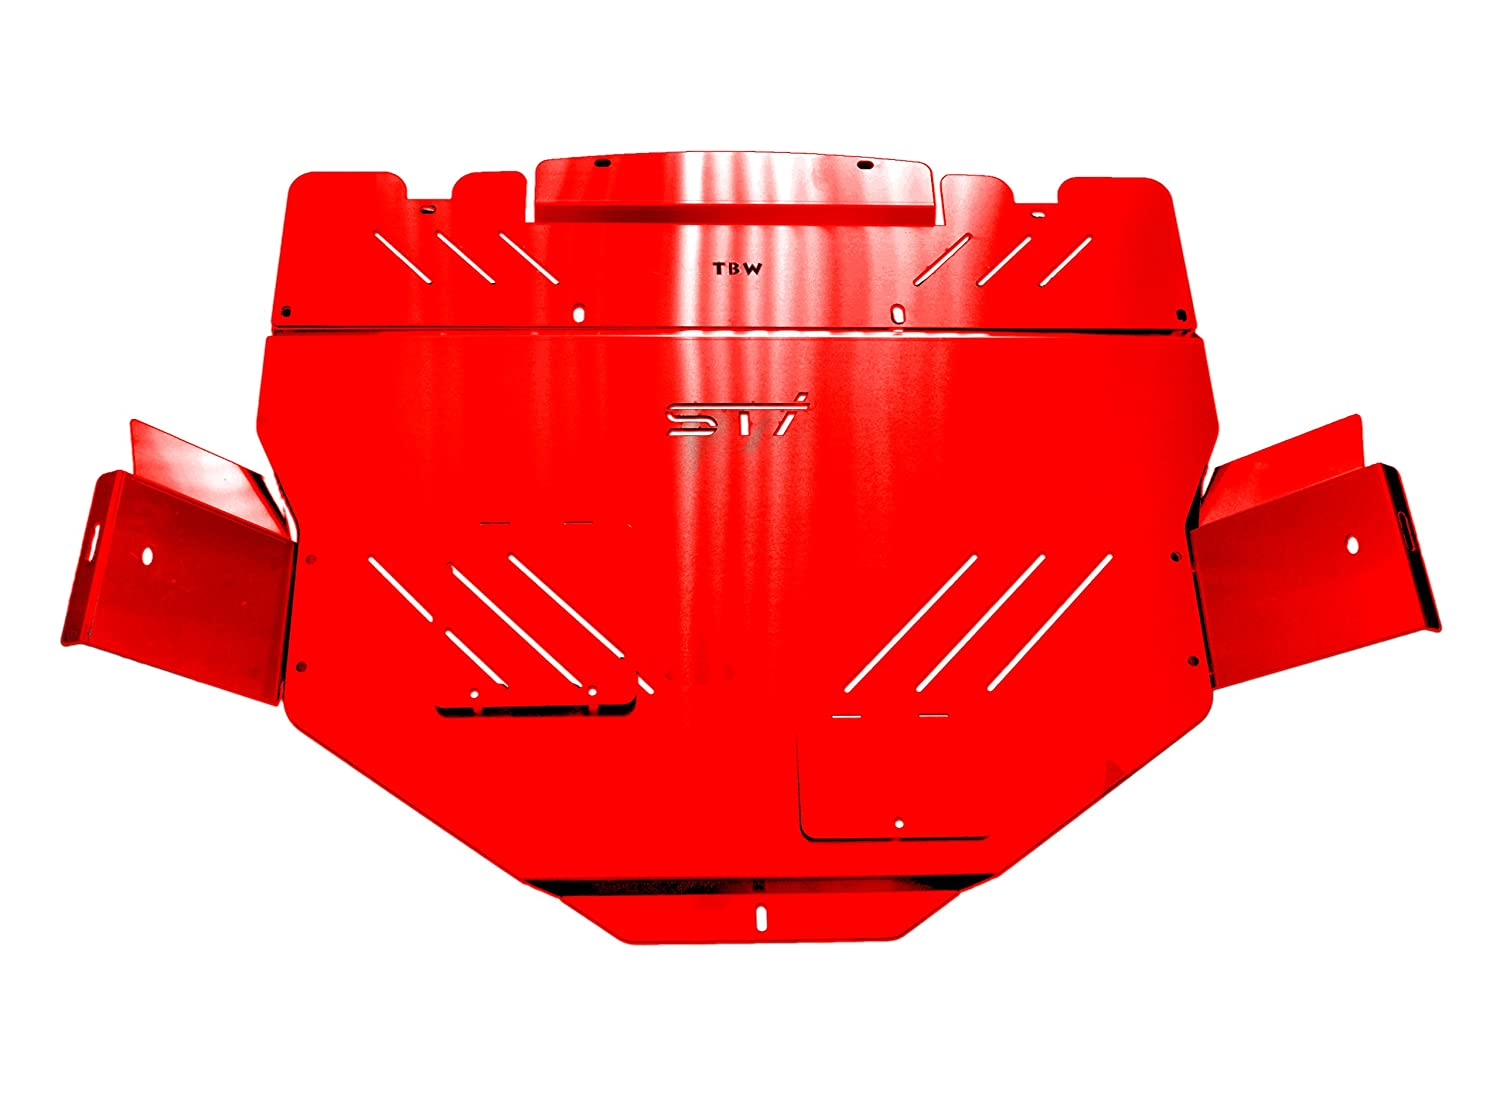 RED TBW Aluminum Under Tray Skid Plate for 2015+ Subaru STI TBW Performance